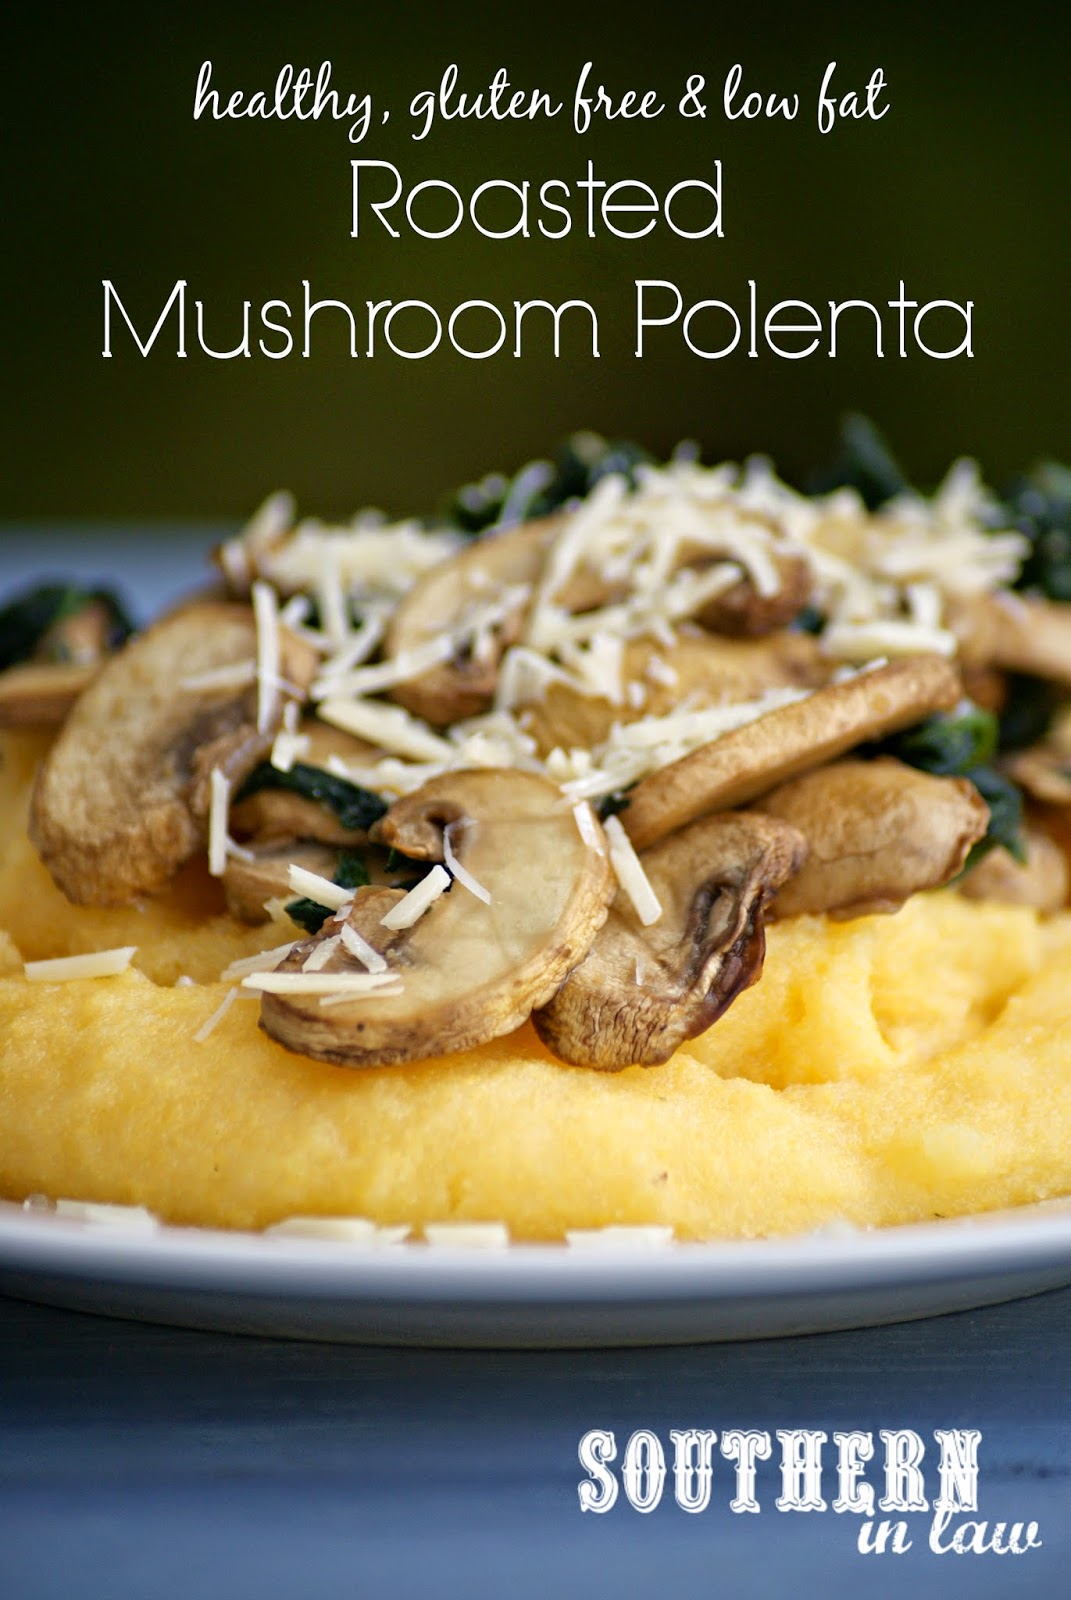 Healthy Roasted Mushroom Polenta Recipe - gluten free, healthy, low fat, vegan